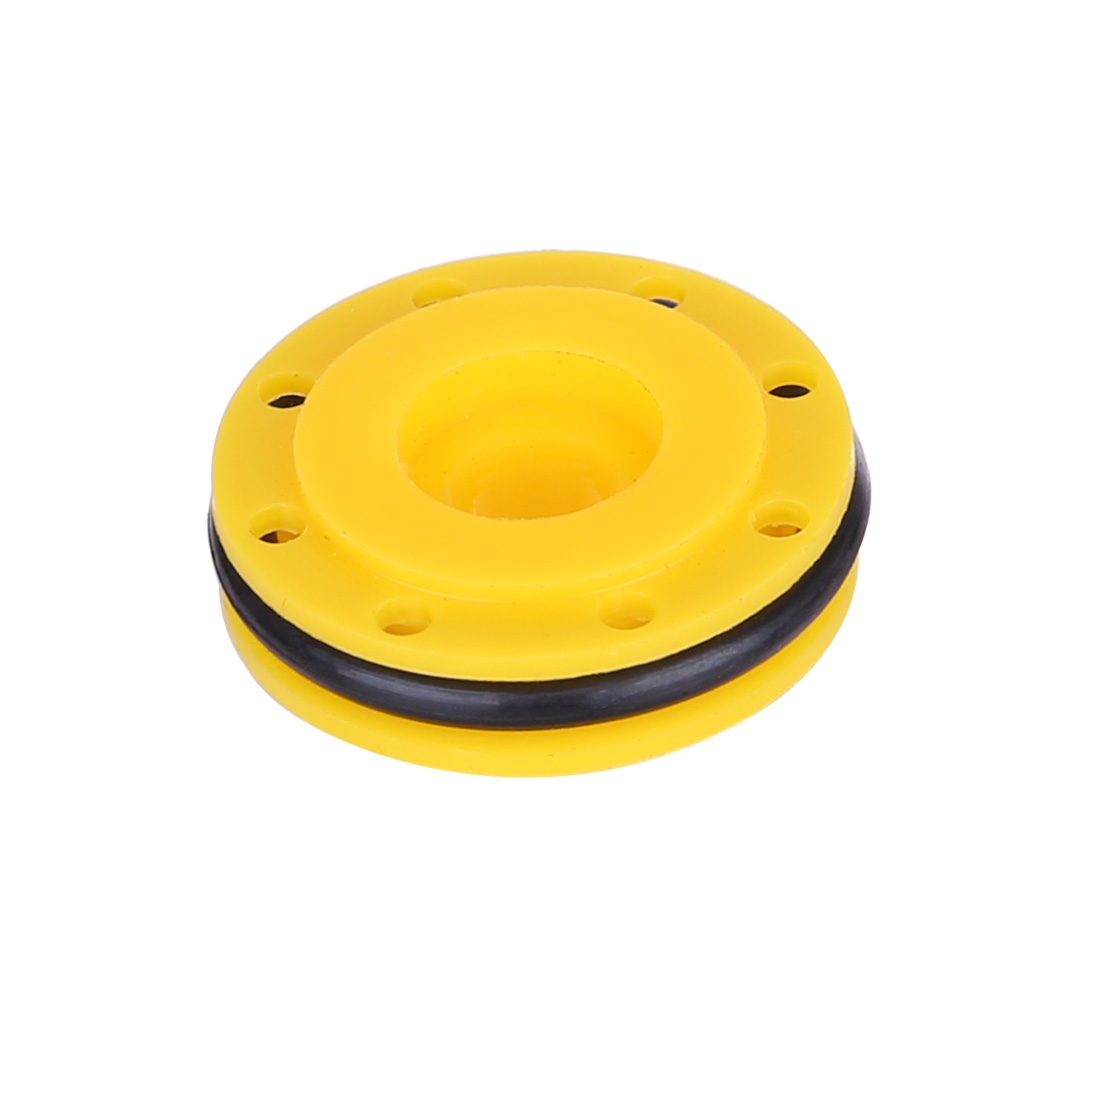 MODIKER 8-holes Large Displacement Piston Head For LH AUG Water Gel Beads Blaster - Yellow